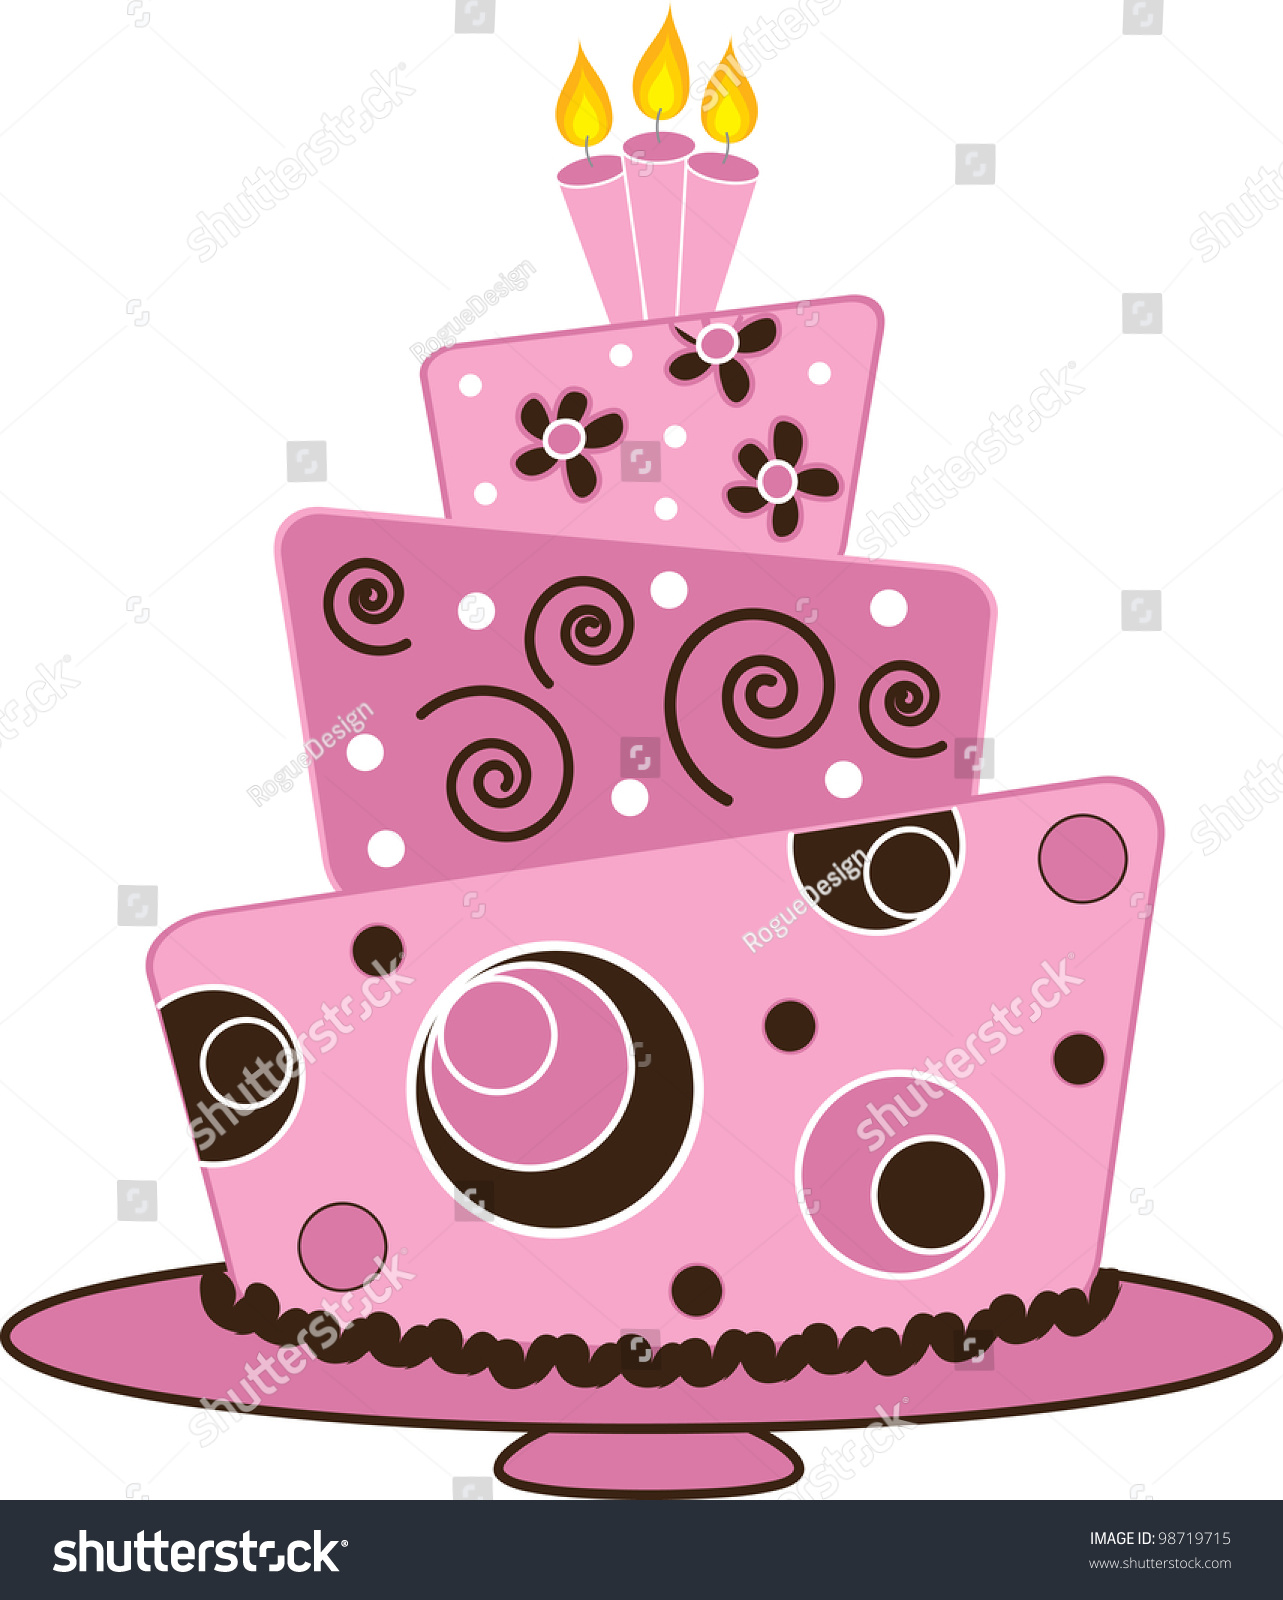 Cake clipart fancy. Royalty free stock illustration